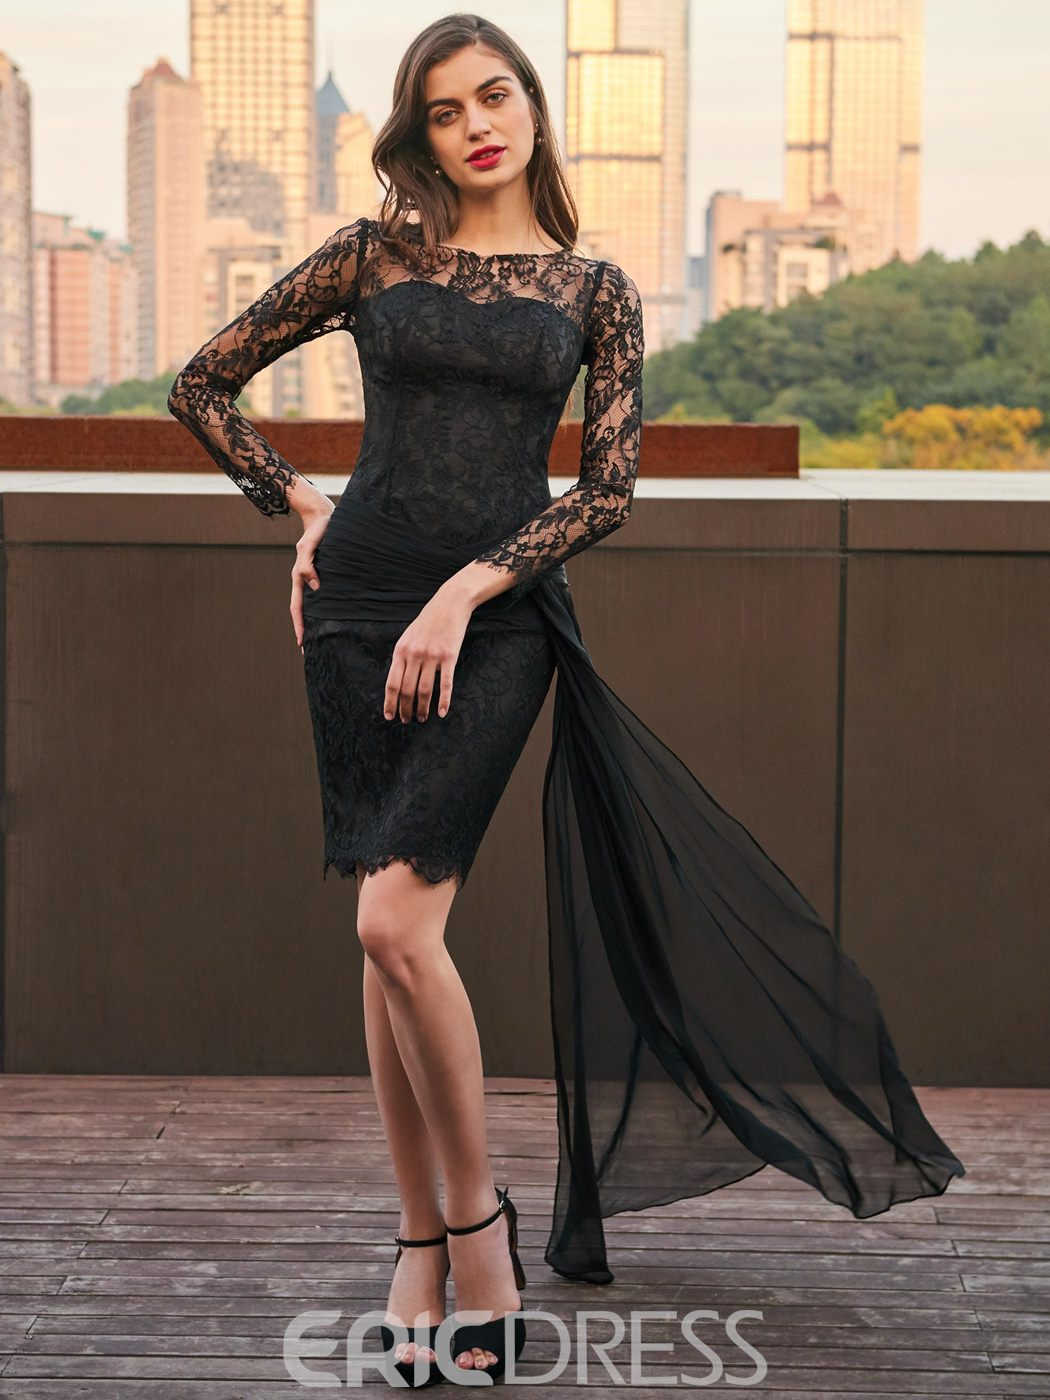 eaf2f2c43 Ericdress Sheath Long Sleeve Lace Black Cocktail Party Dress(13121946)